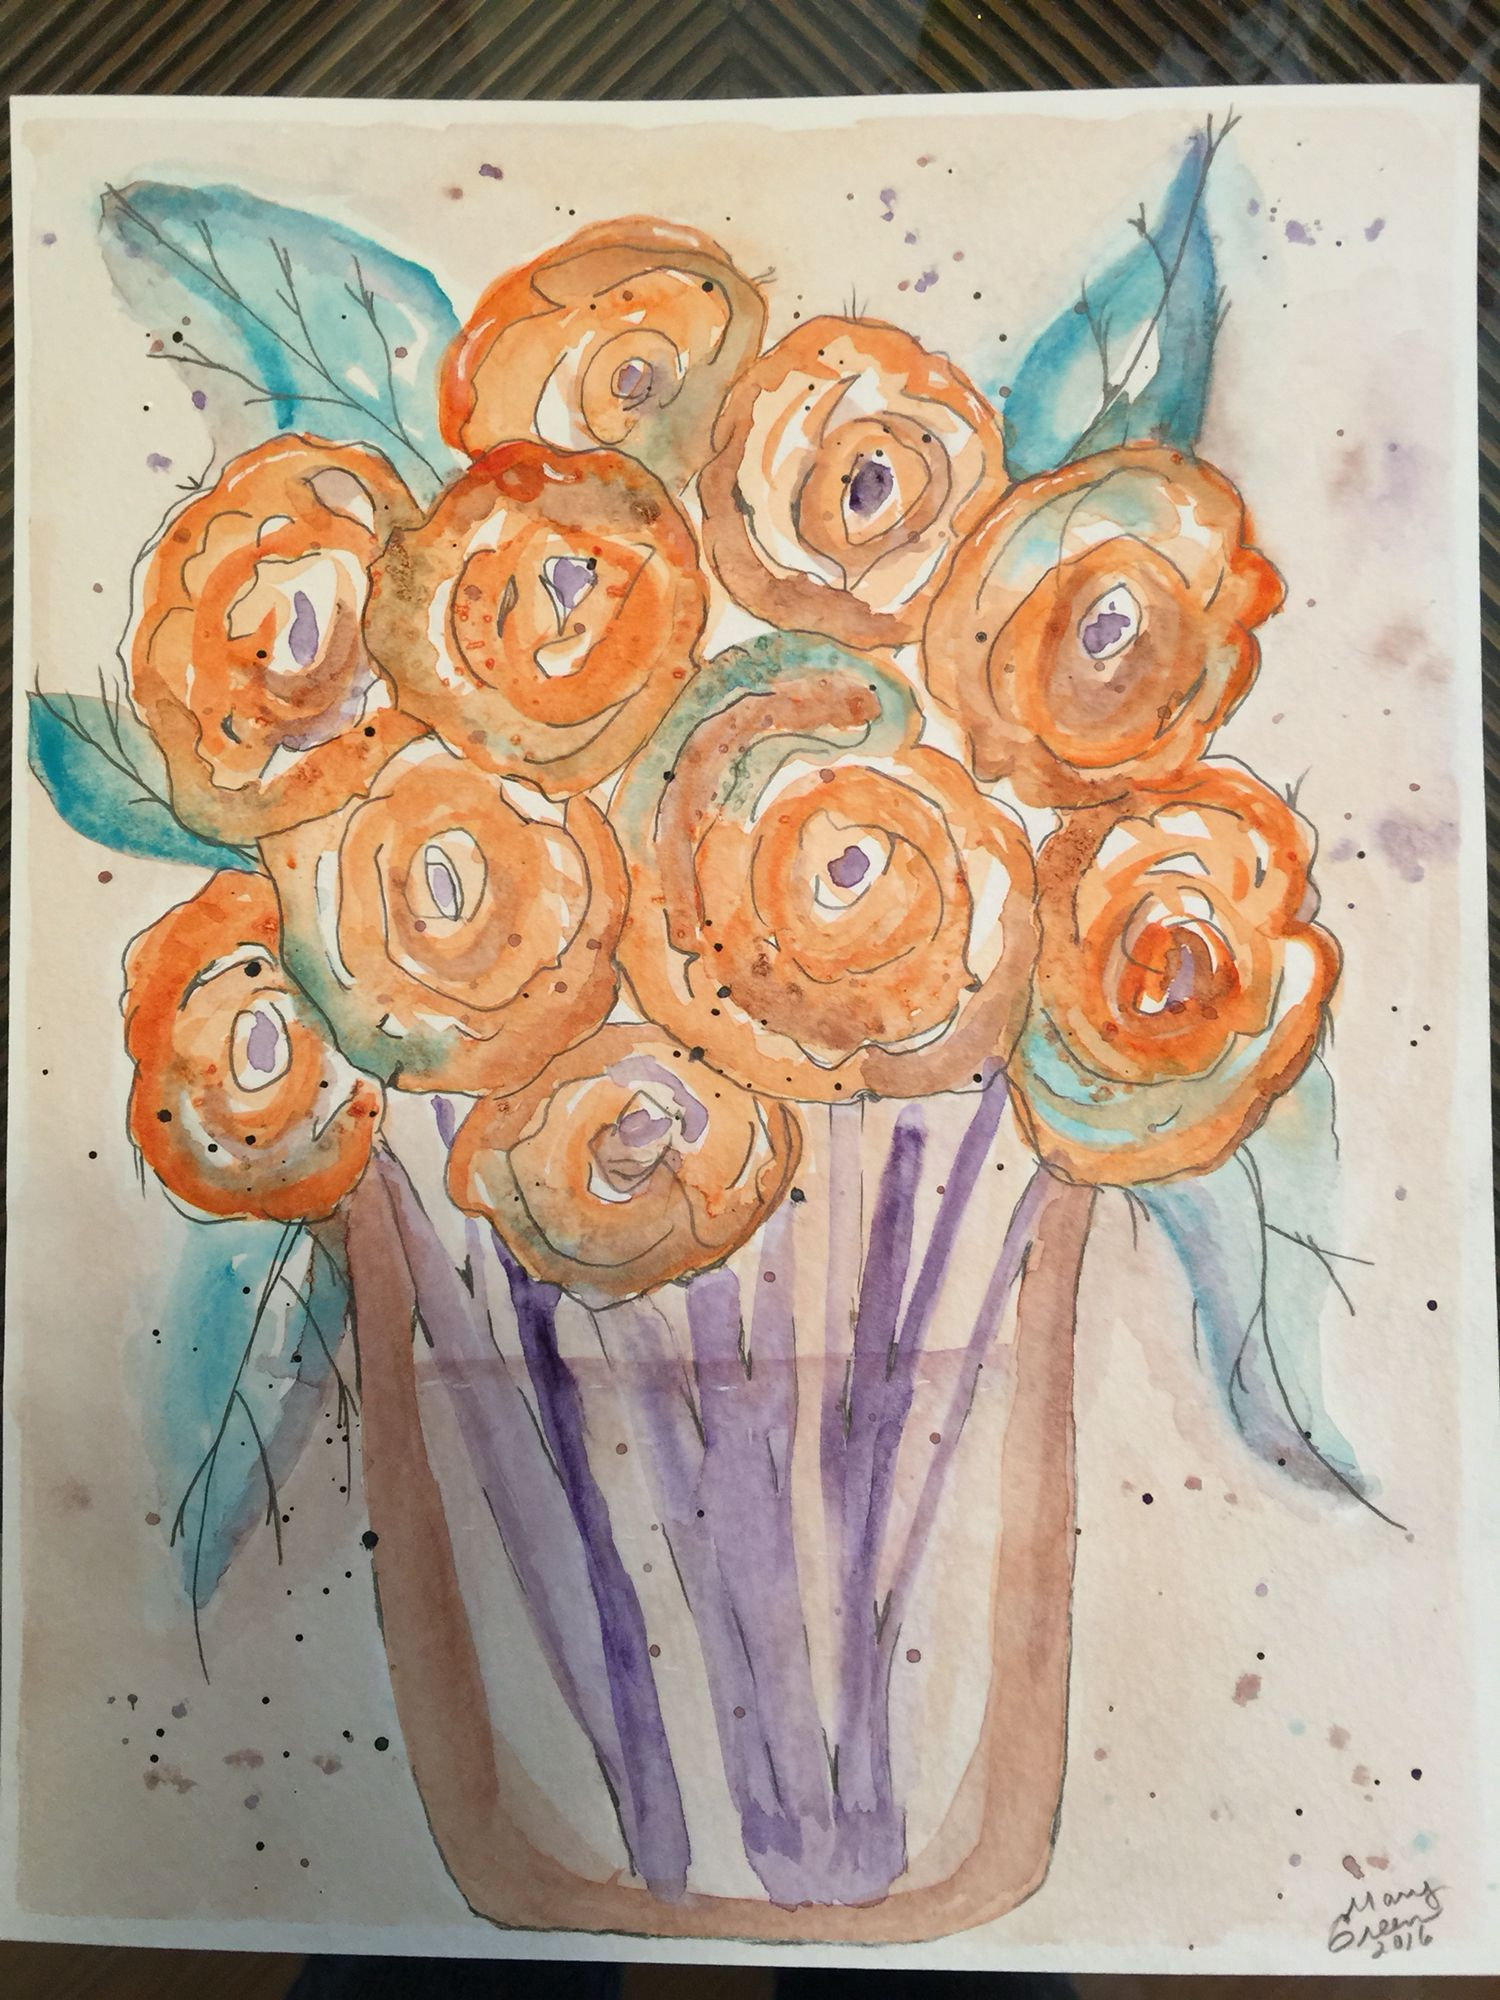 Flow A Peaceful And Fun Exploration In Watercolor Stacha Conboy